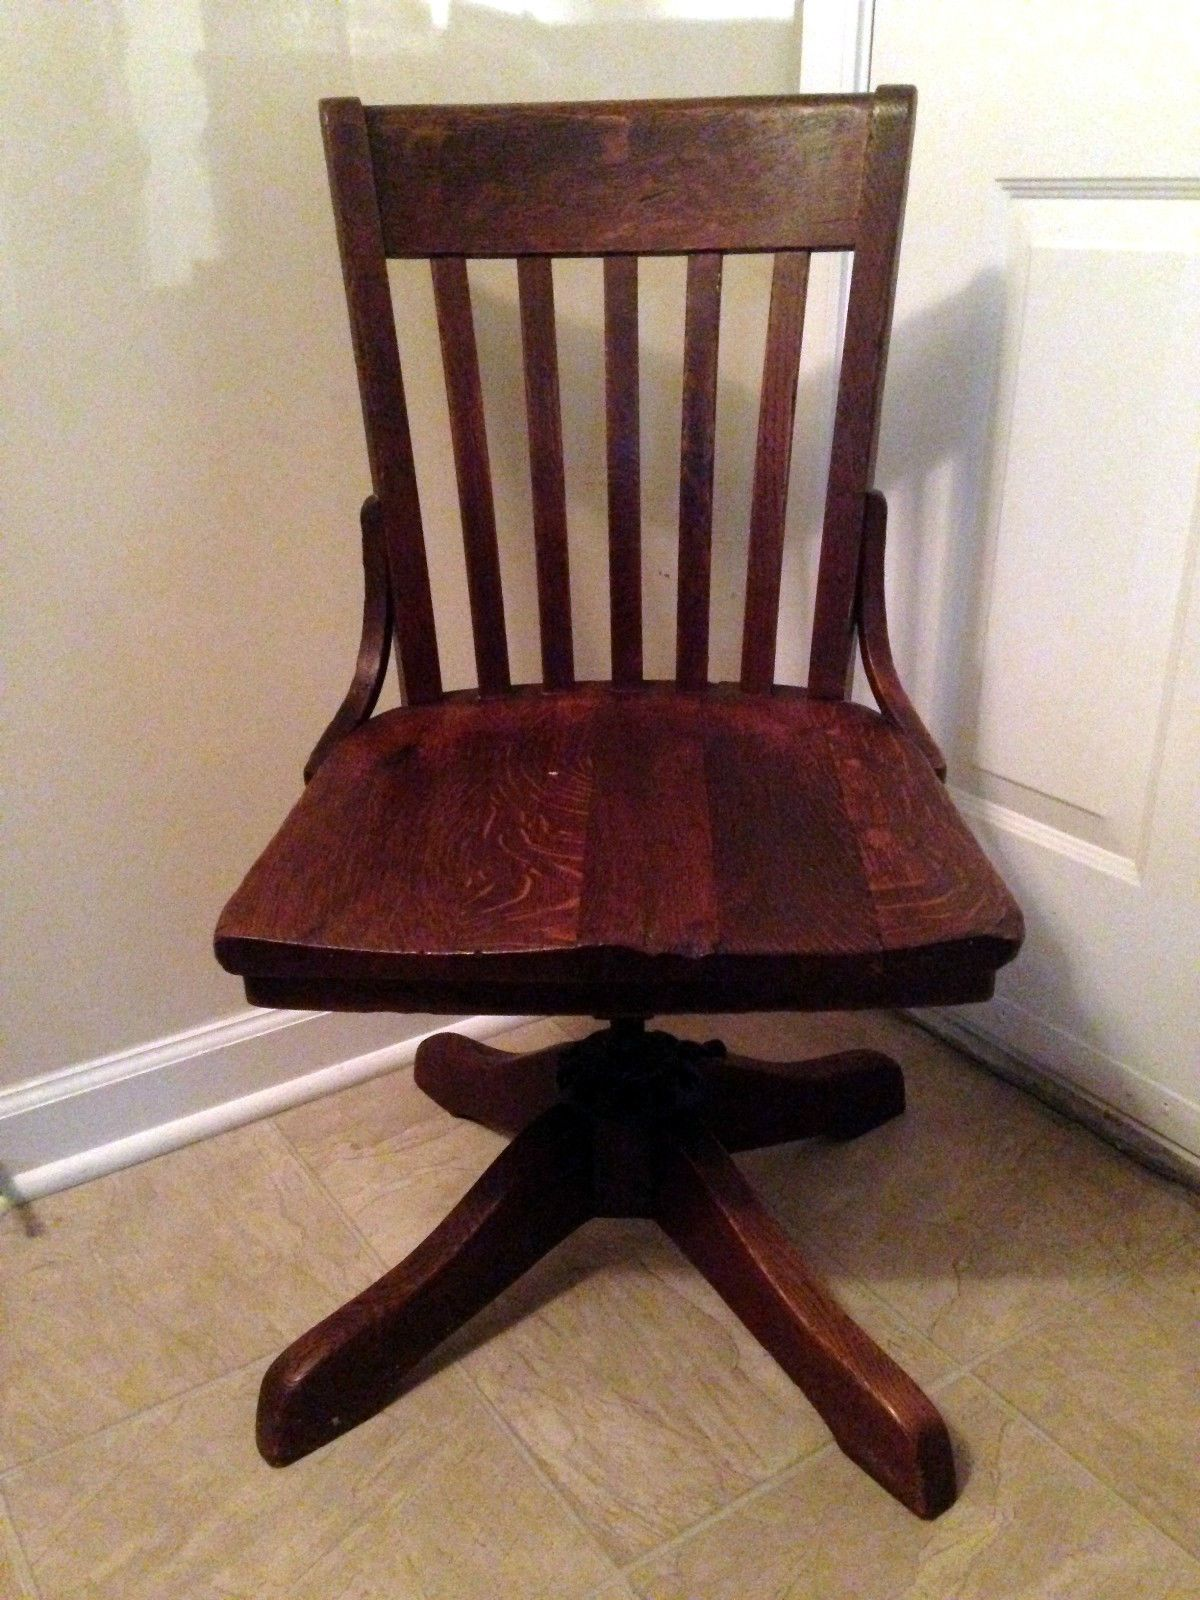 Wood Bankers Chair 1914 Antique Milwaukee Chair Co Wood Oak Bankers Office